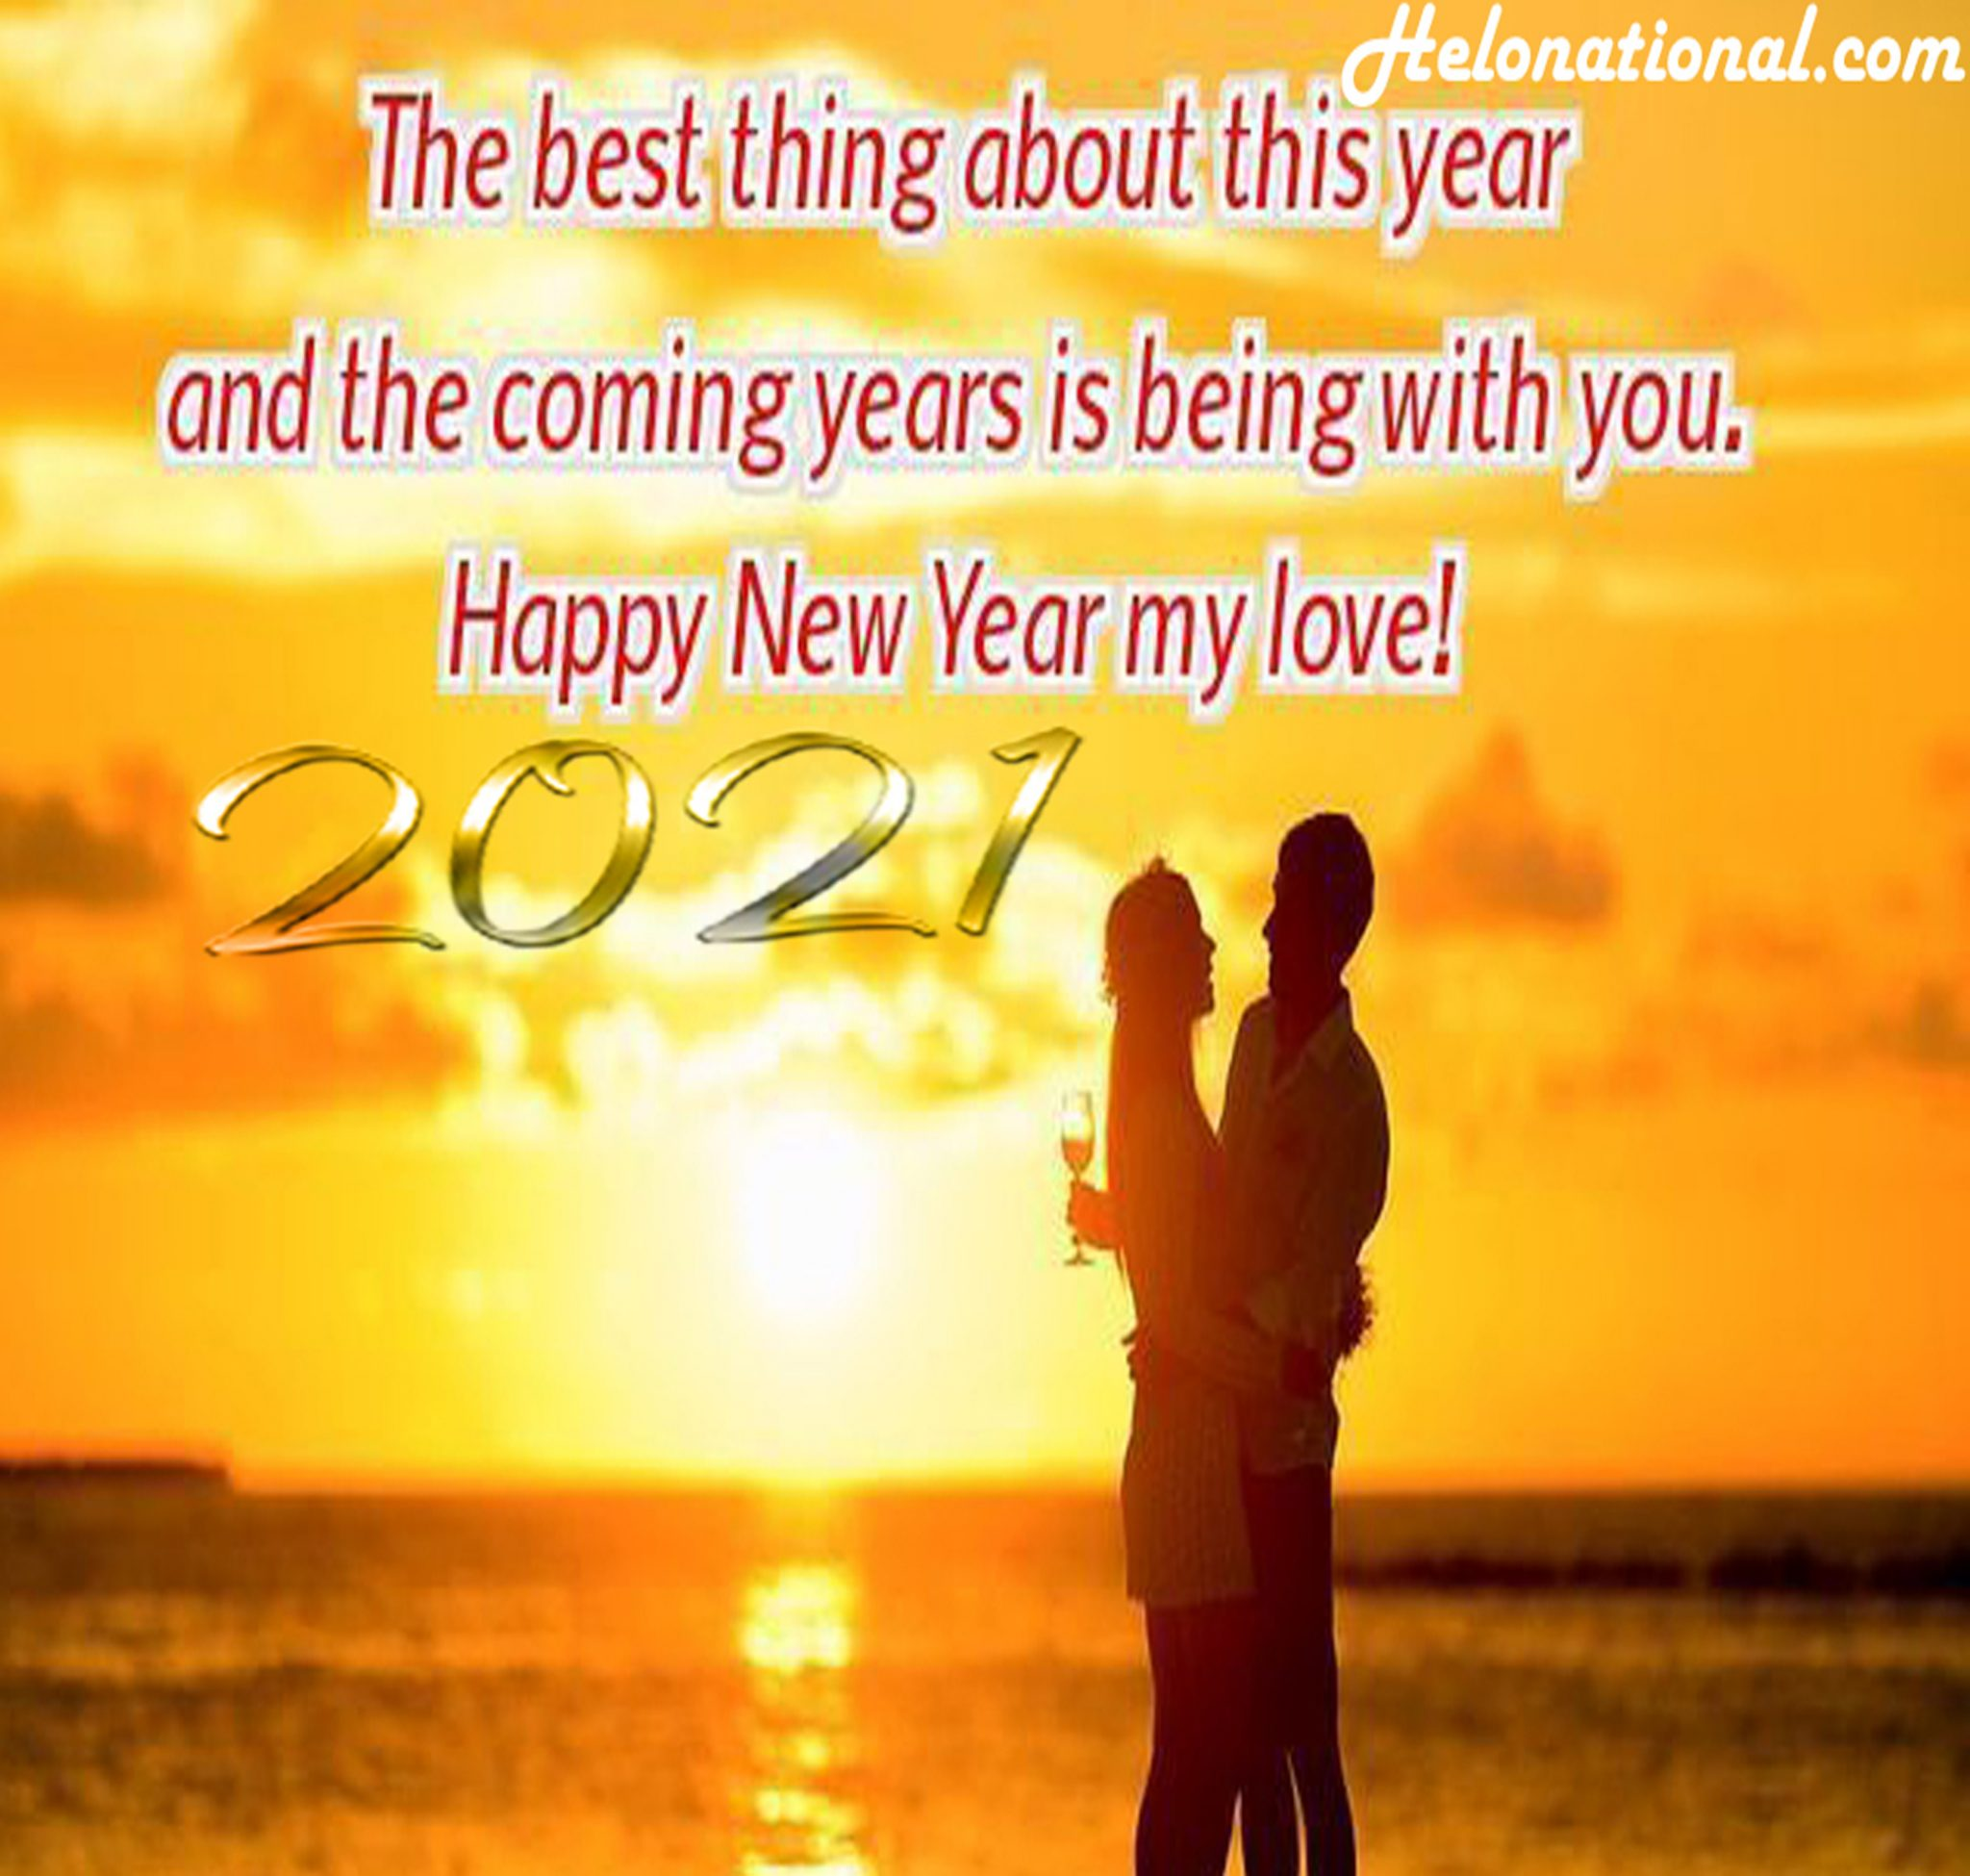 HNY 2021 love quotes images